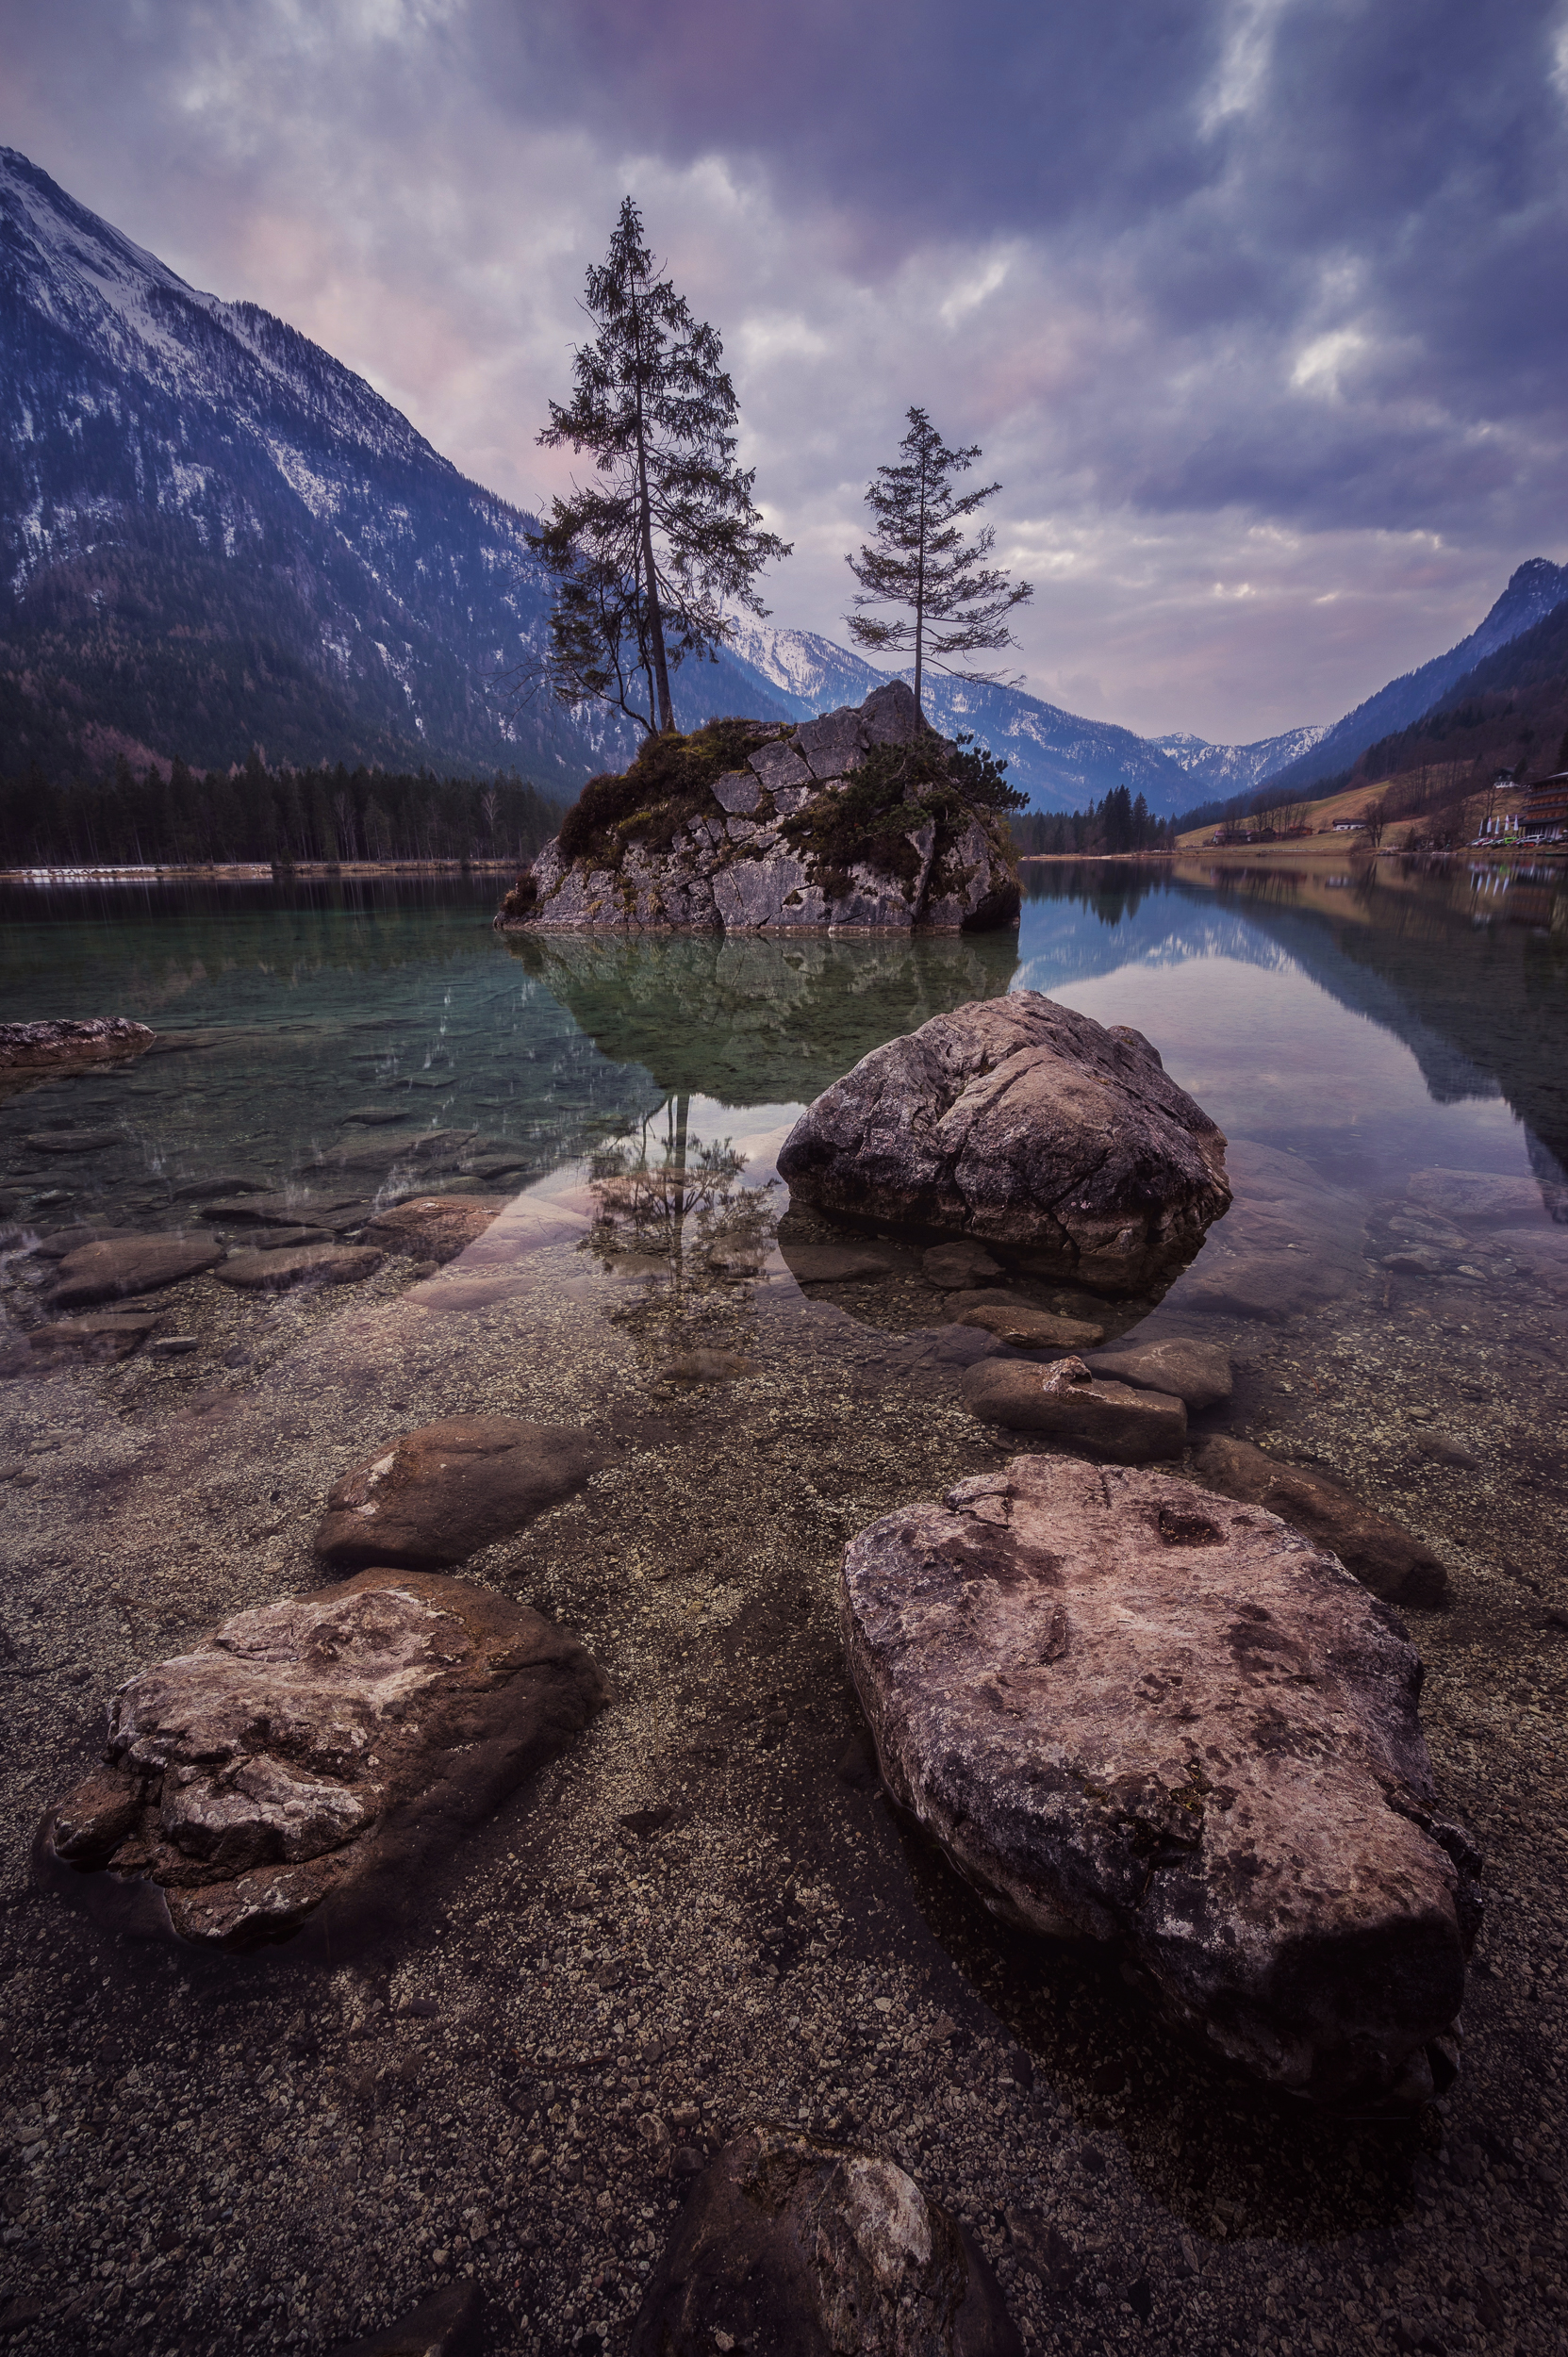 Beautiful island with natural trees at Hintersee near Berchtesgaden